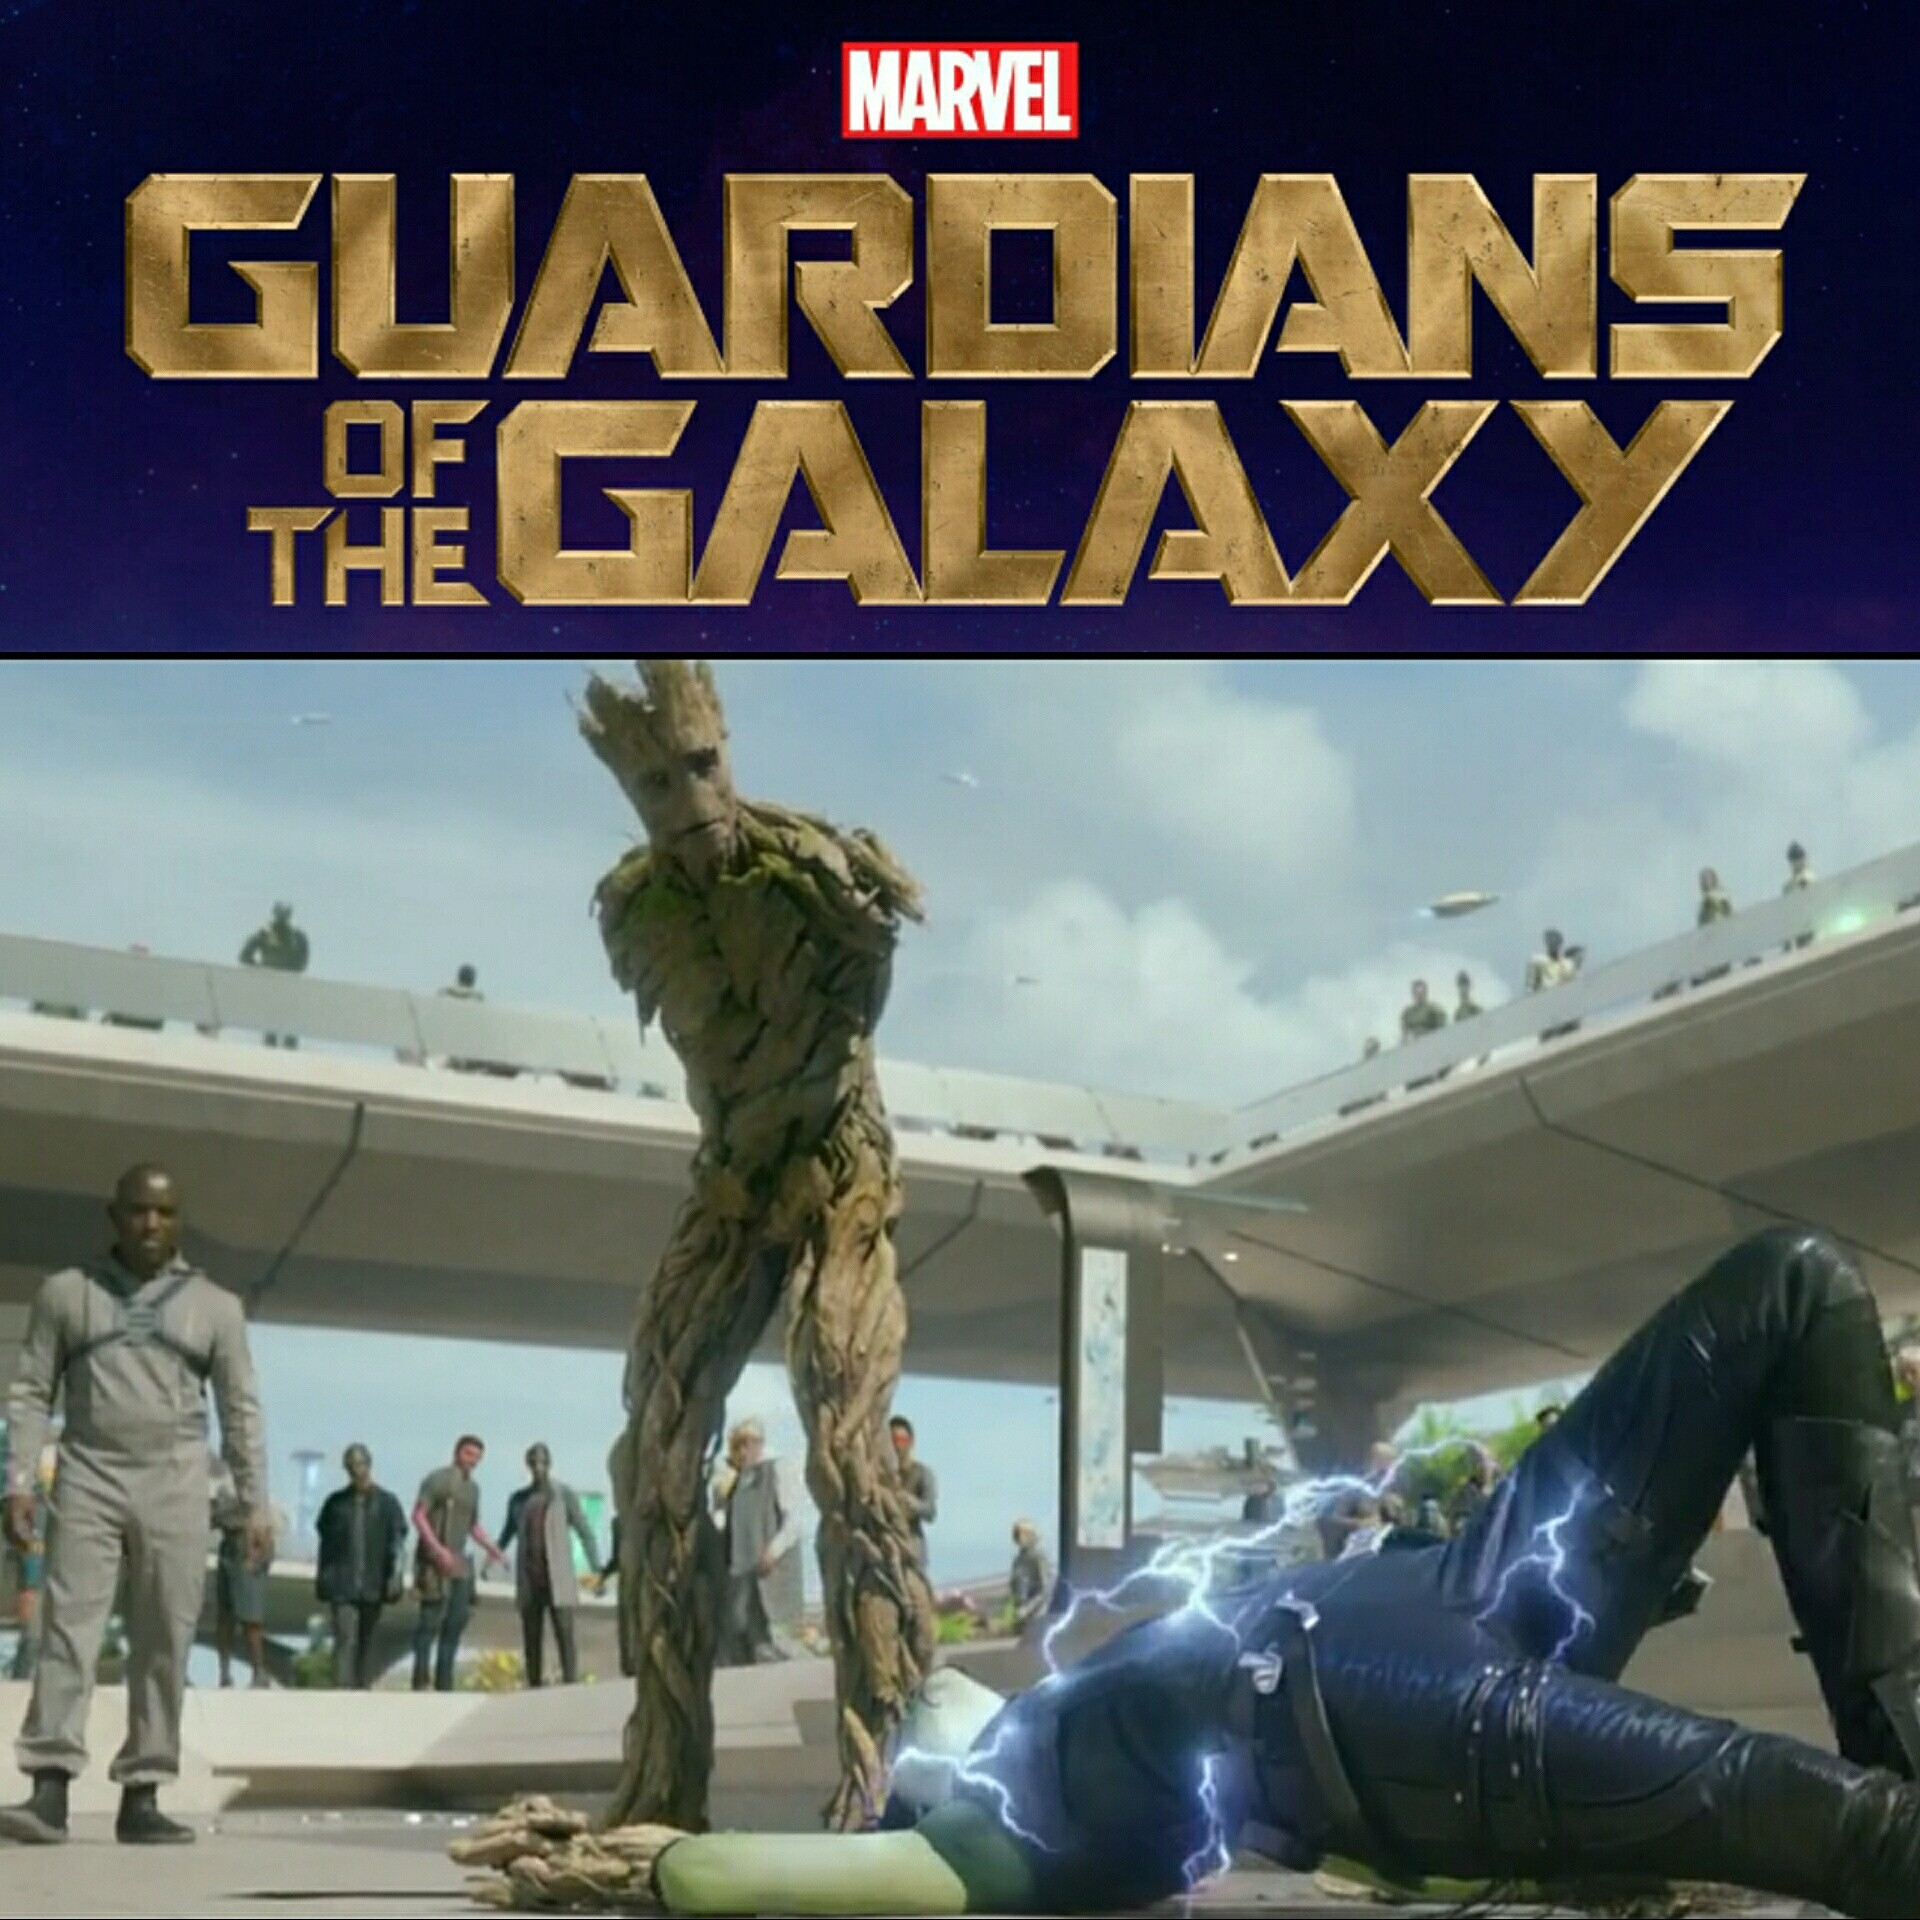 Phoenix James in Marvel's Guardians of the Galaxy